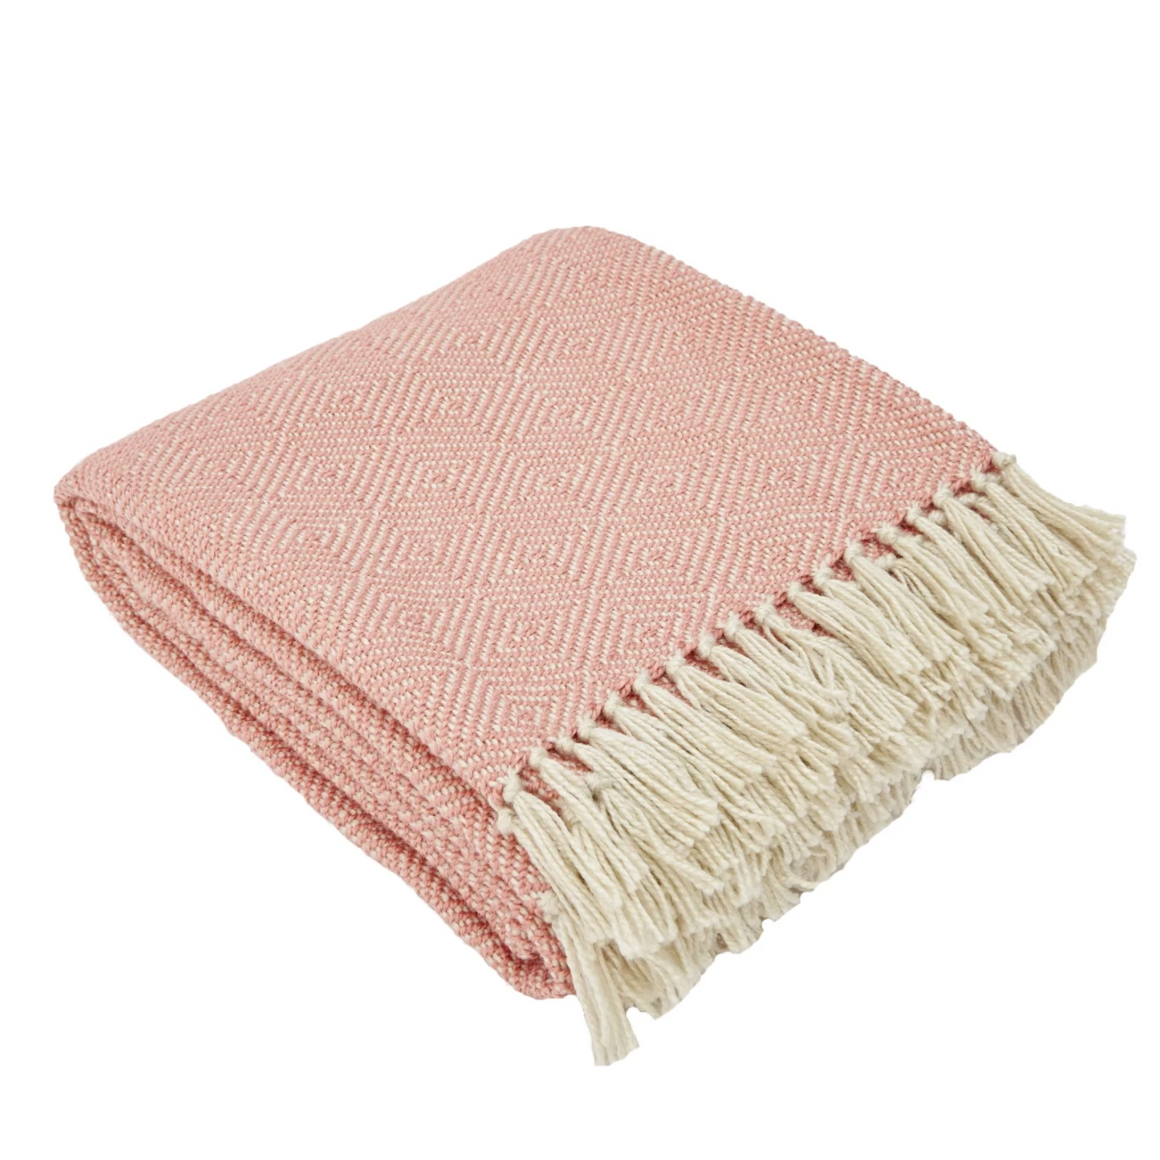 CORAL ECO-FRIENDLY BLANKET